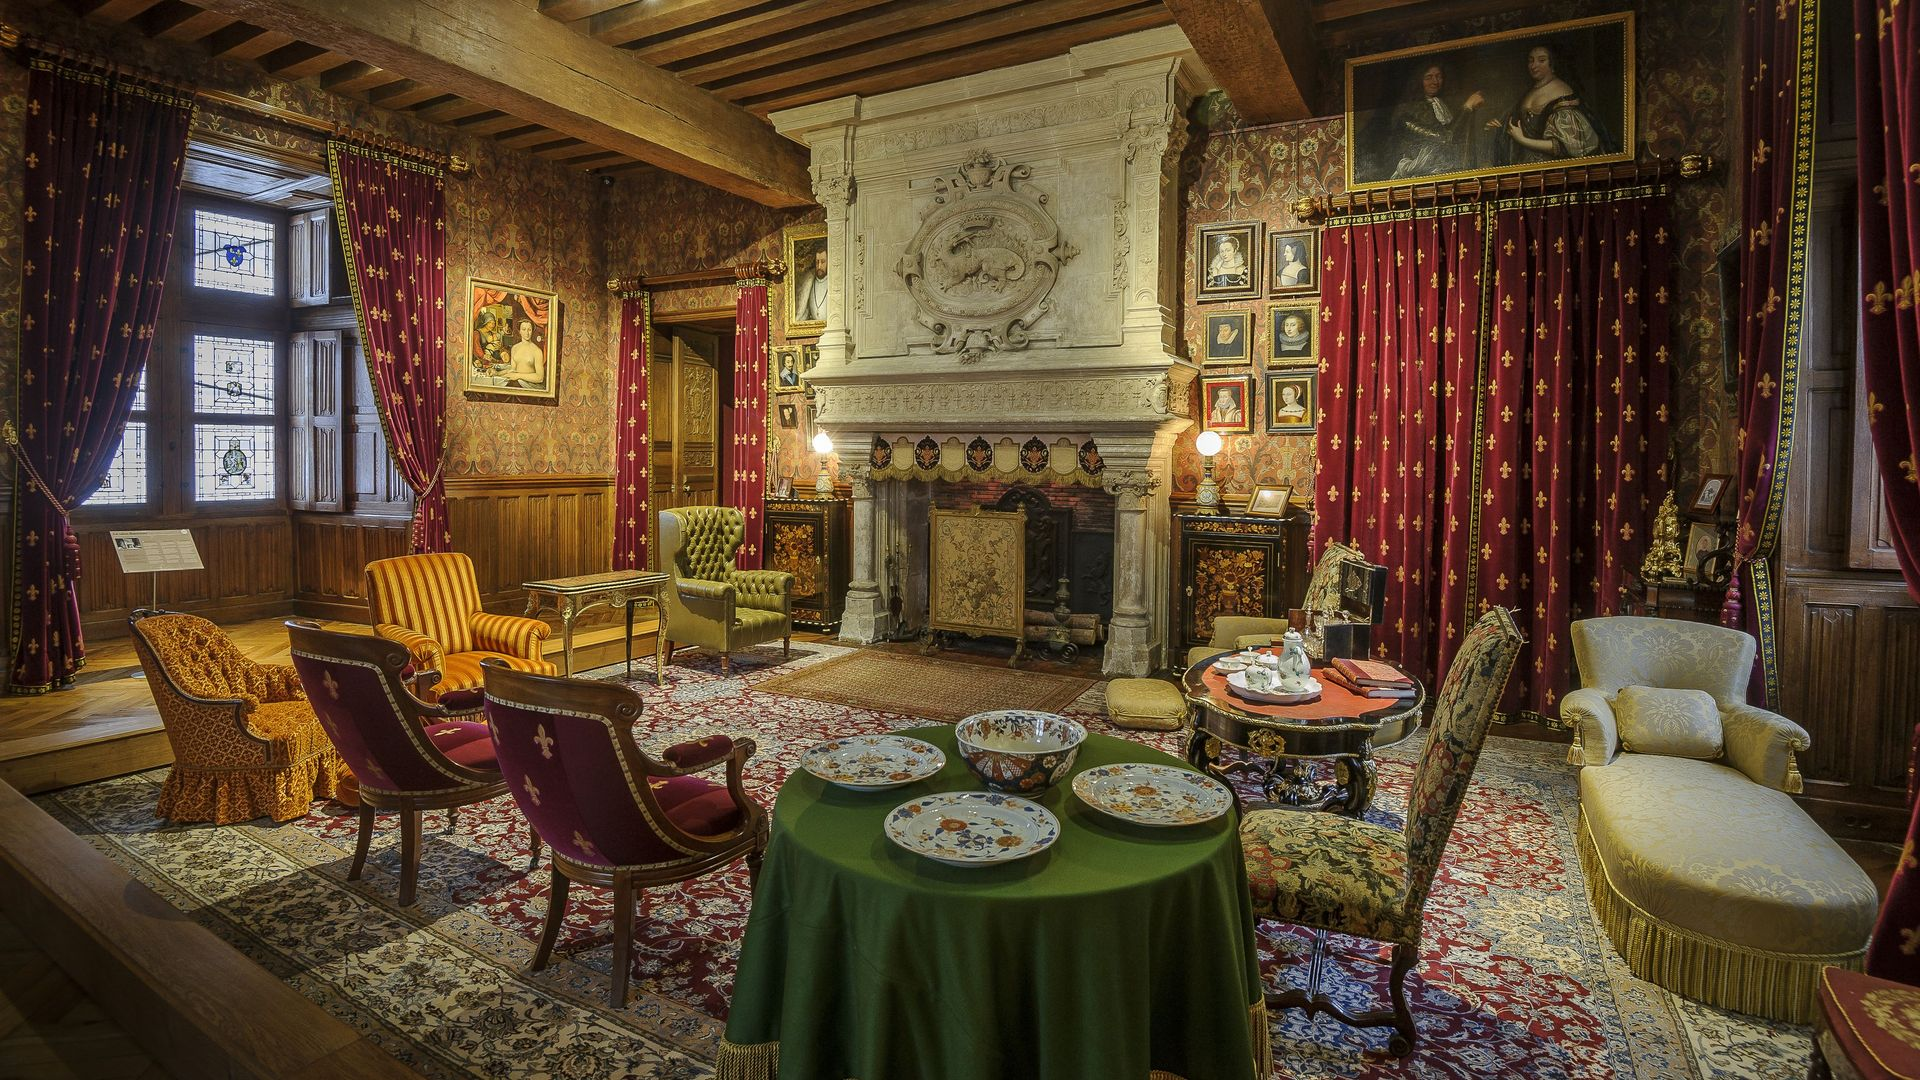 Not To Be Missed The Biencourt Room The Loire Valley A Journey